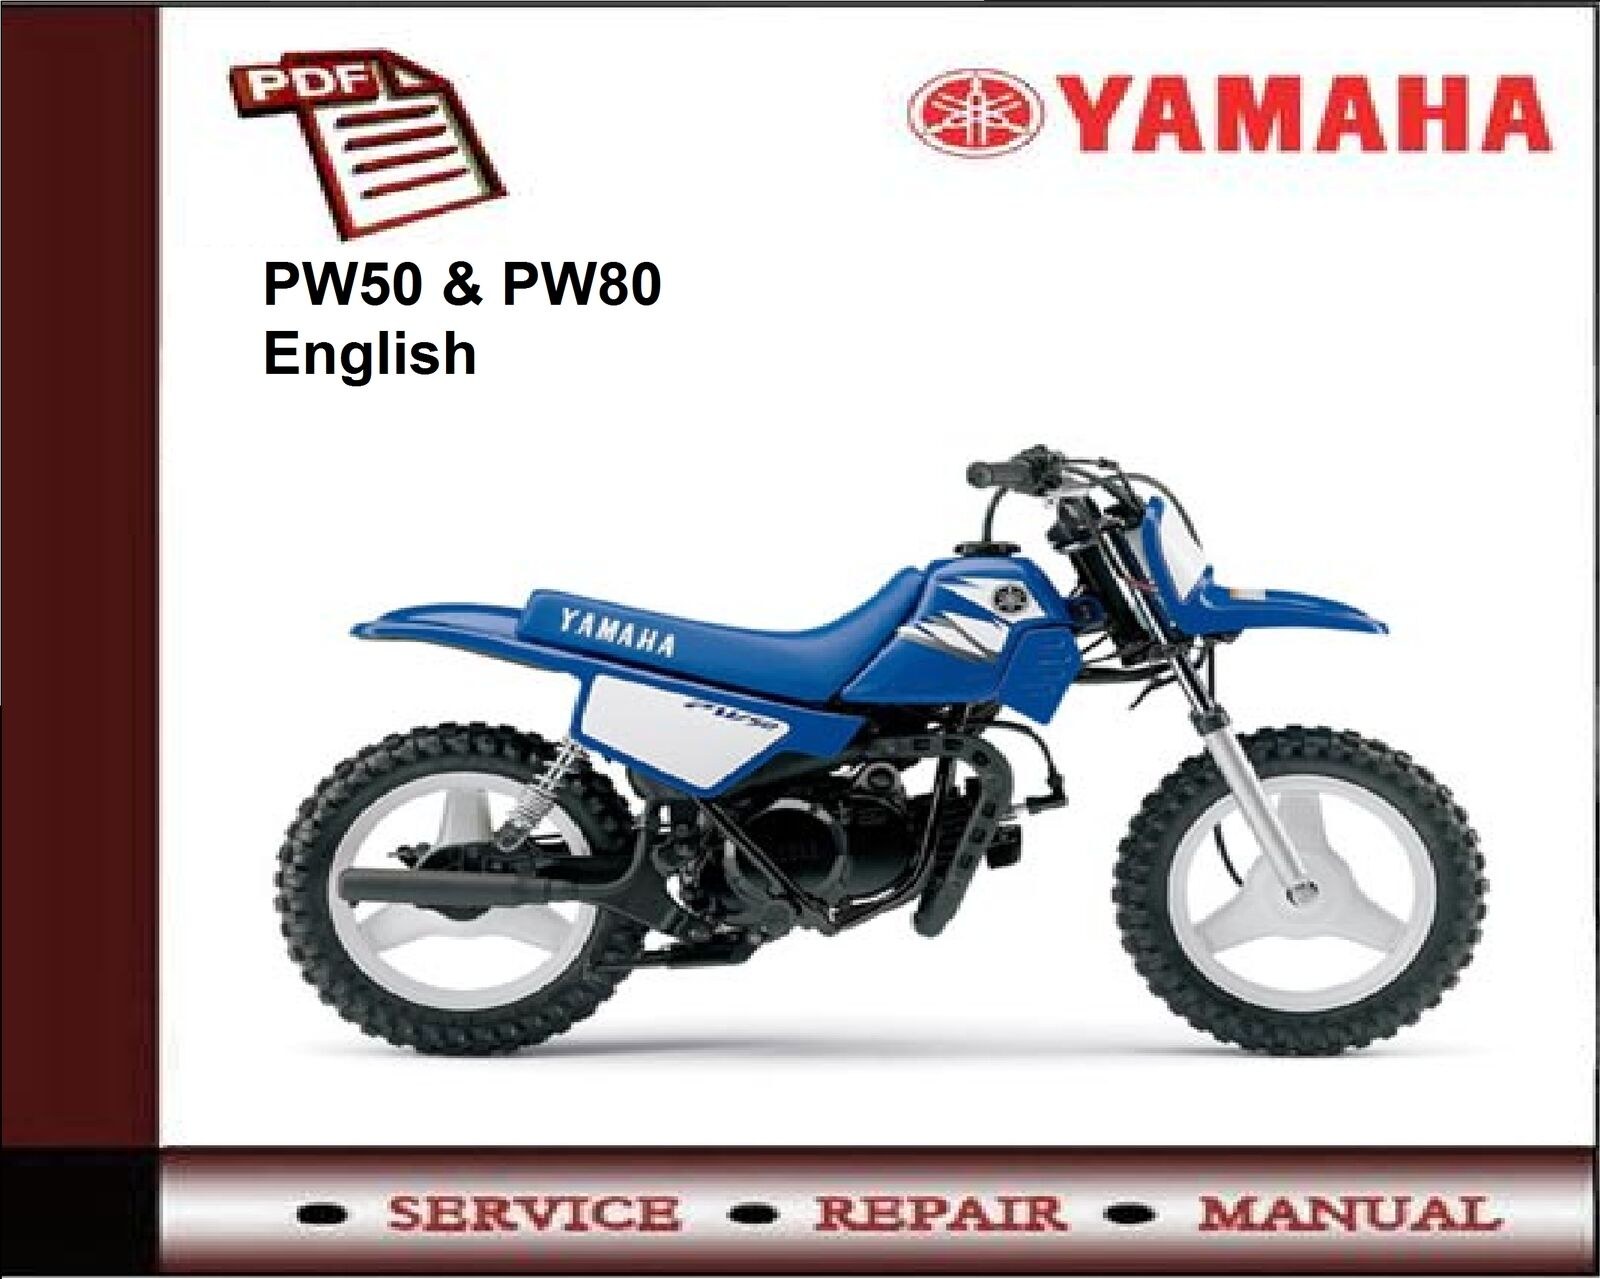 ... Array - yamaha pw50 u0026 pw80 service repair workshop manual 6 50  picclick uk rh picclick